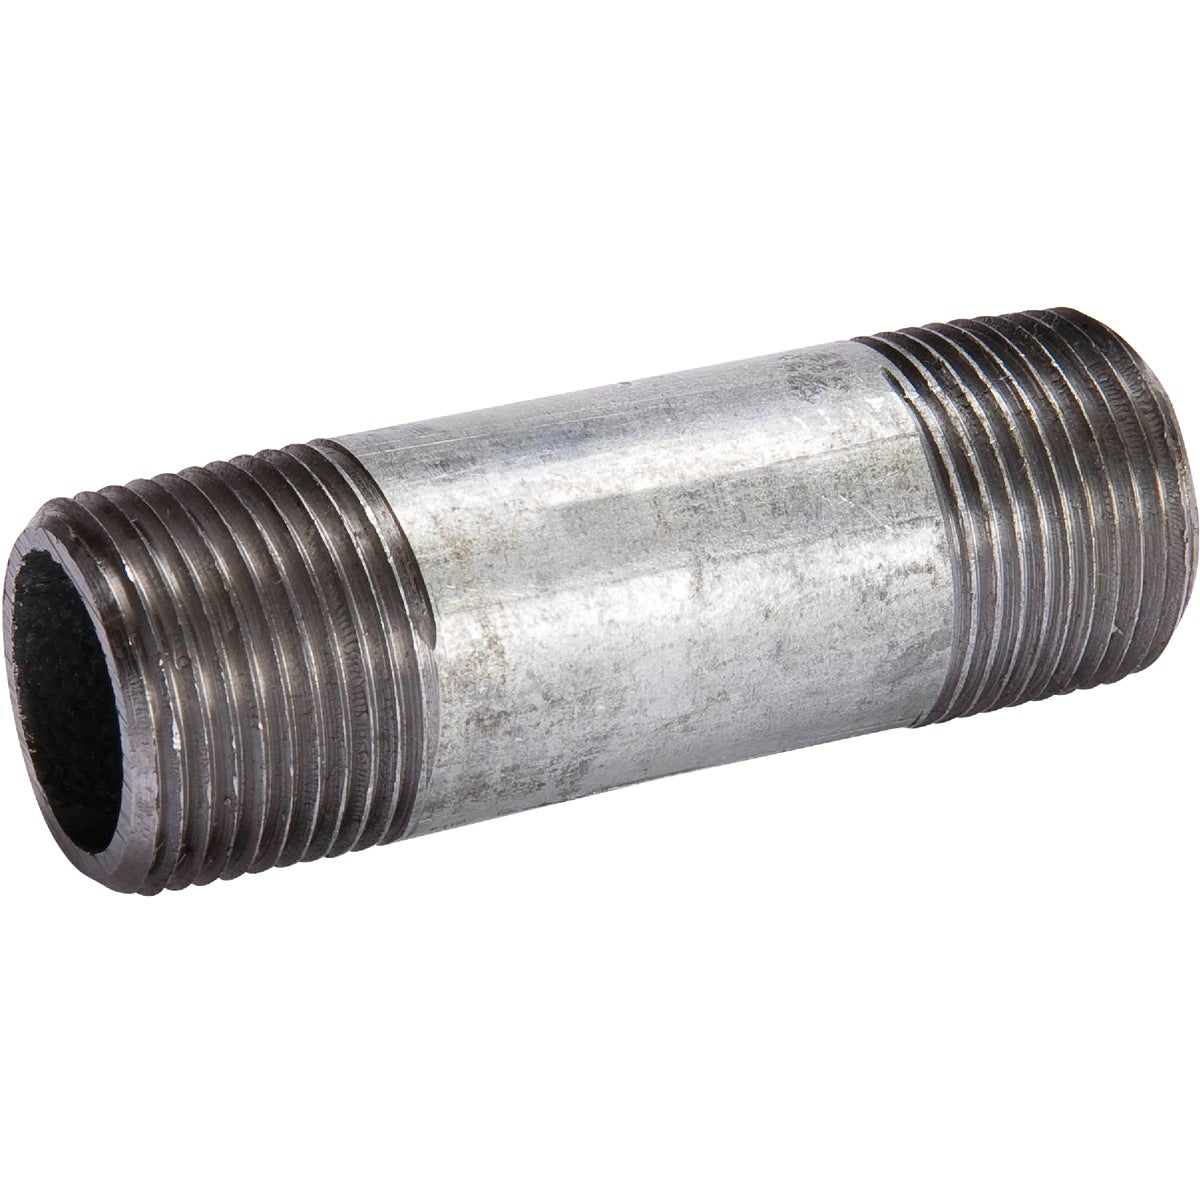 1-1/4X4-1/2 GALV NIPPLE - 10707 by Southland Pipe Nippl